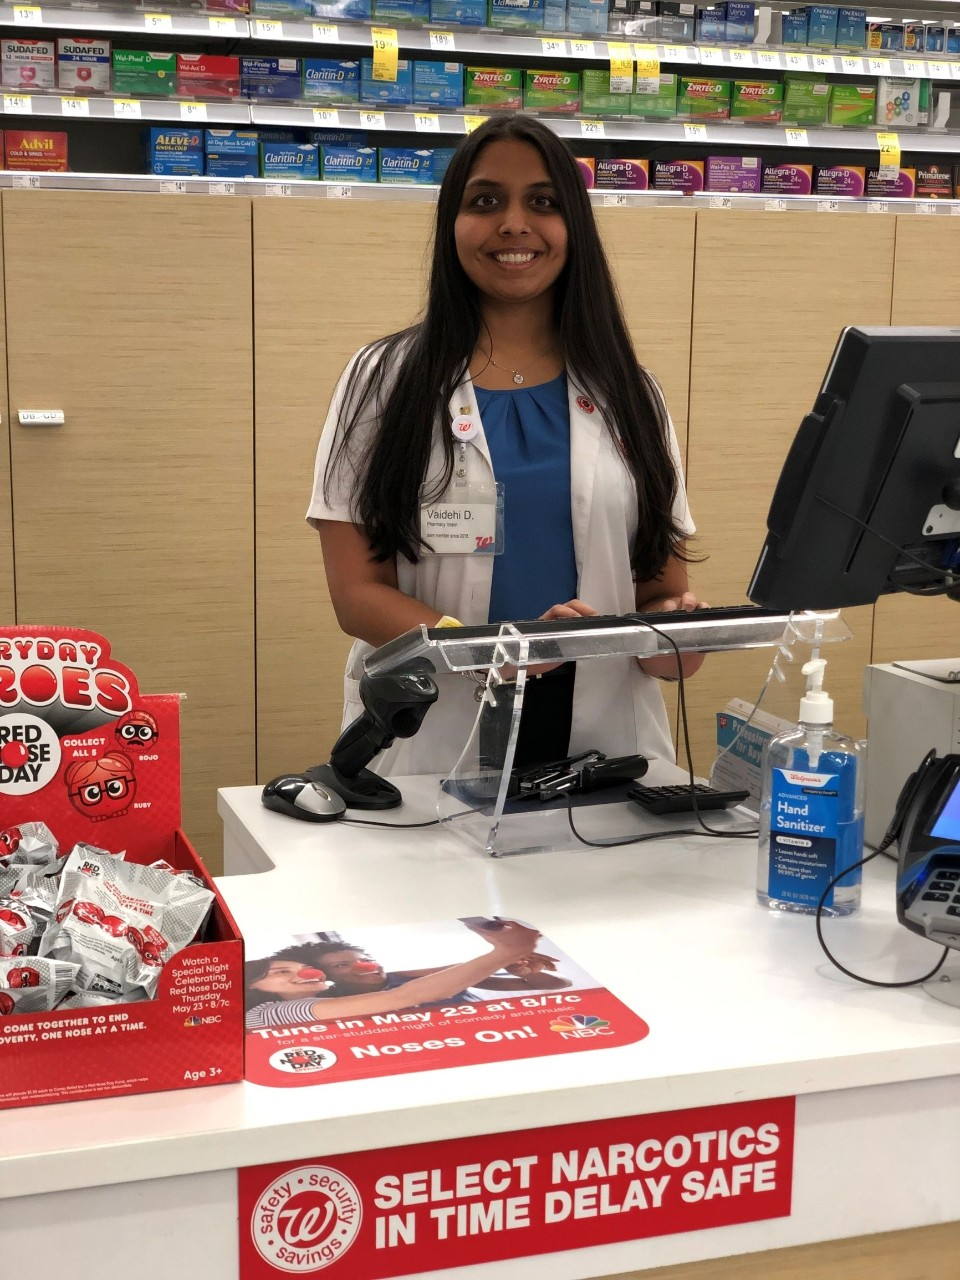 Specialty pharmacy resident Vaidehi Desai, behind the counter of a Walgreens pharmacy where she worked as an intern.